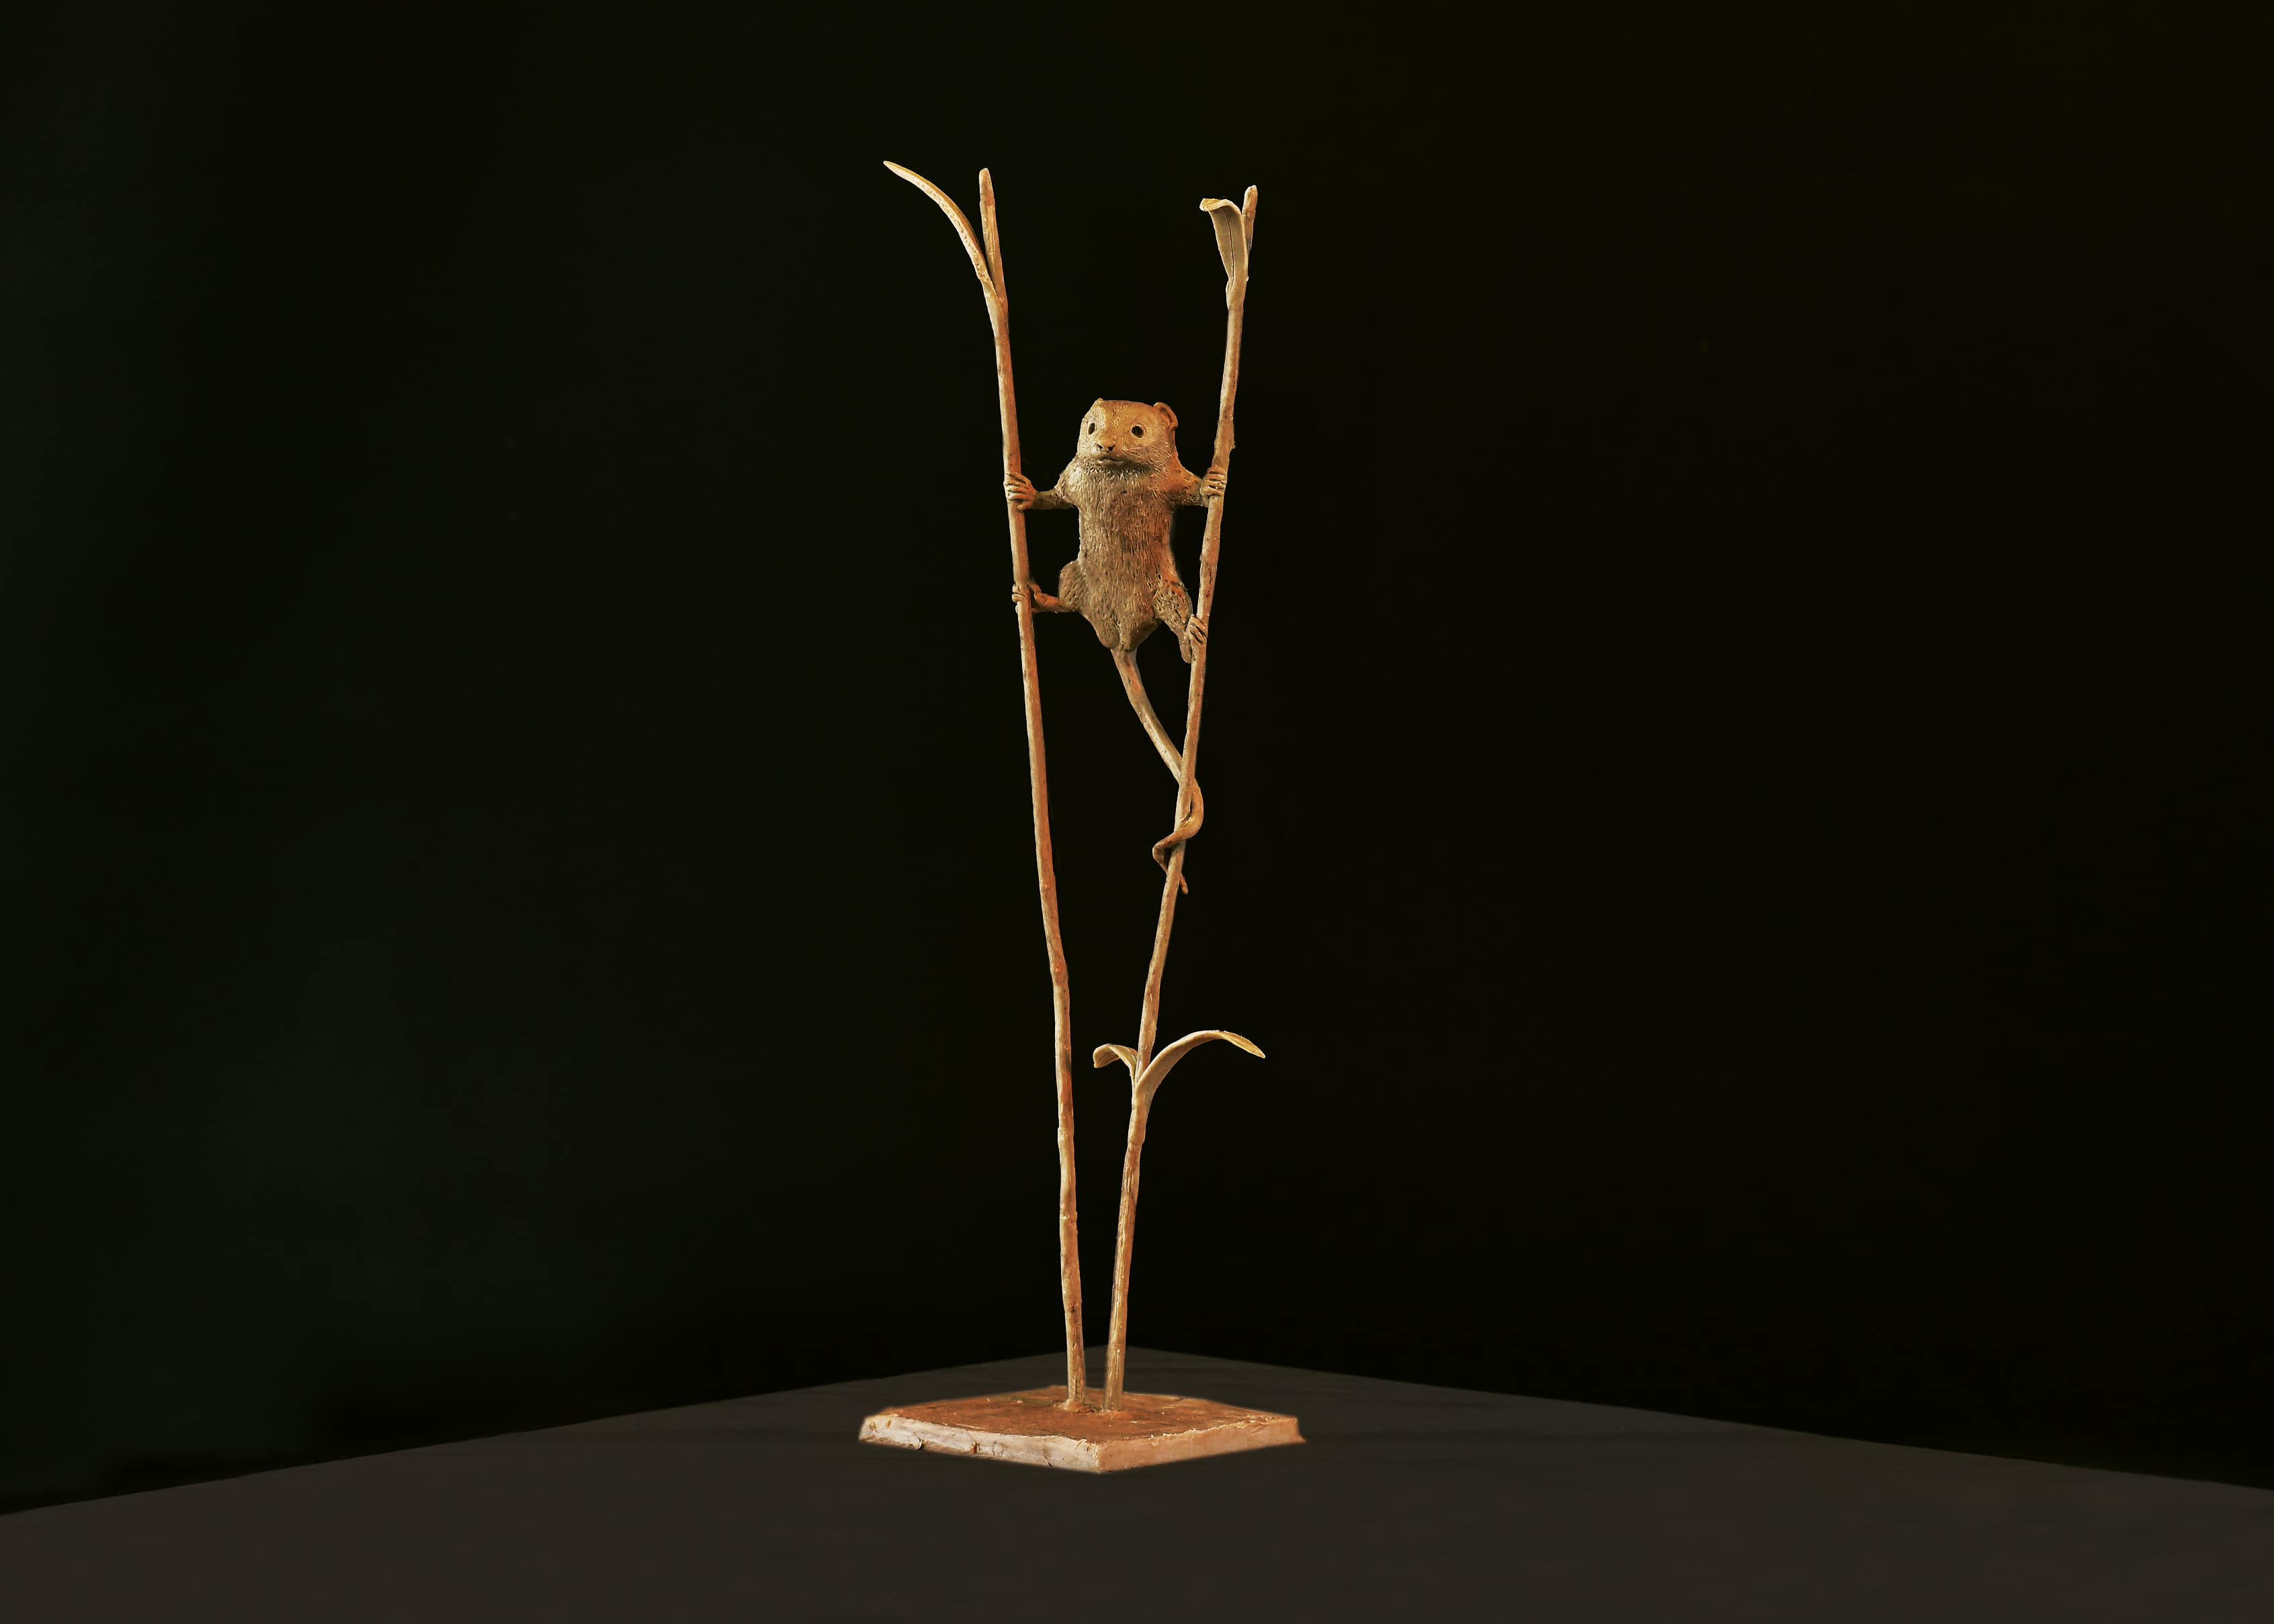 Bruce Little, bronze sculpture, Harvest Mouse